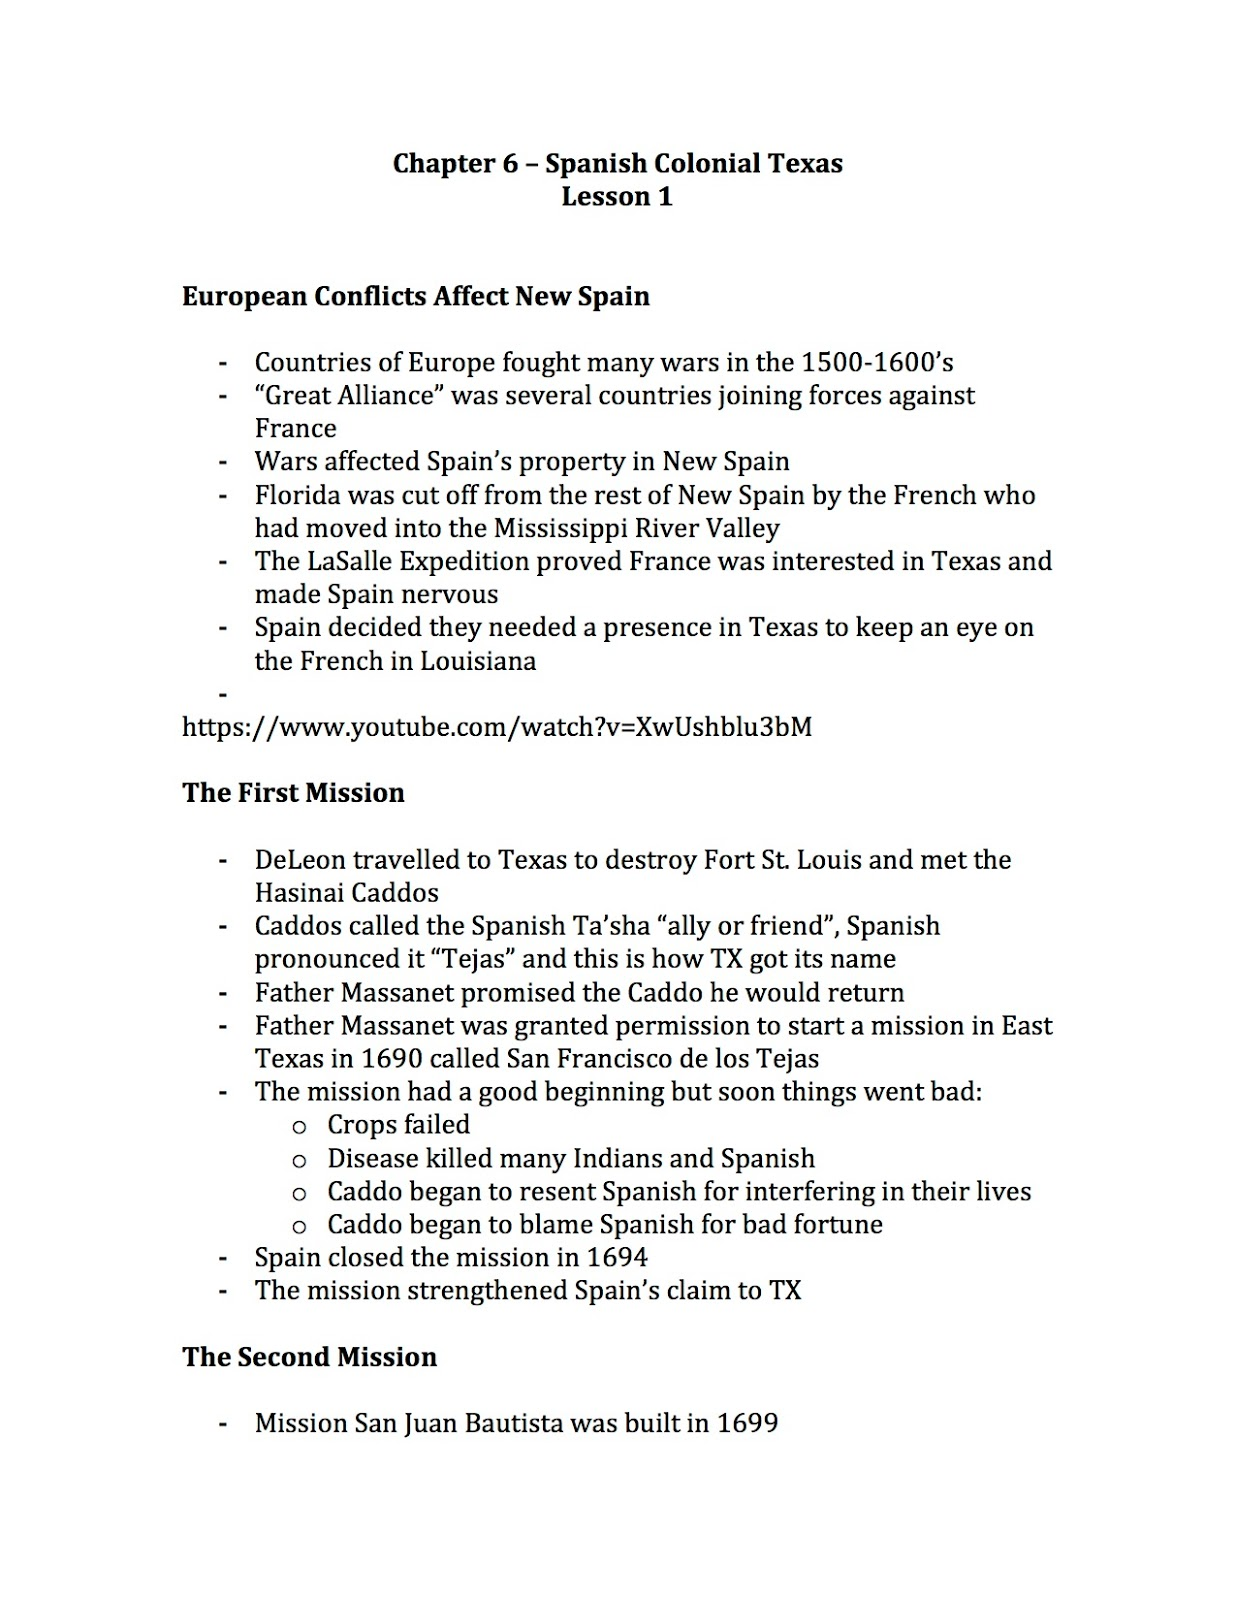 Classnotes Notes For Class 11 History Chapter 6